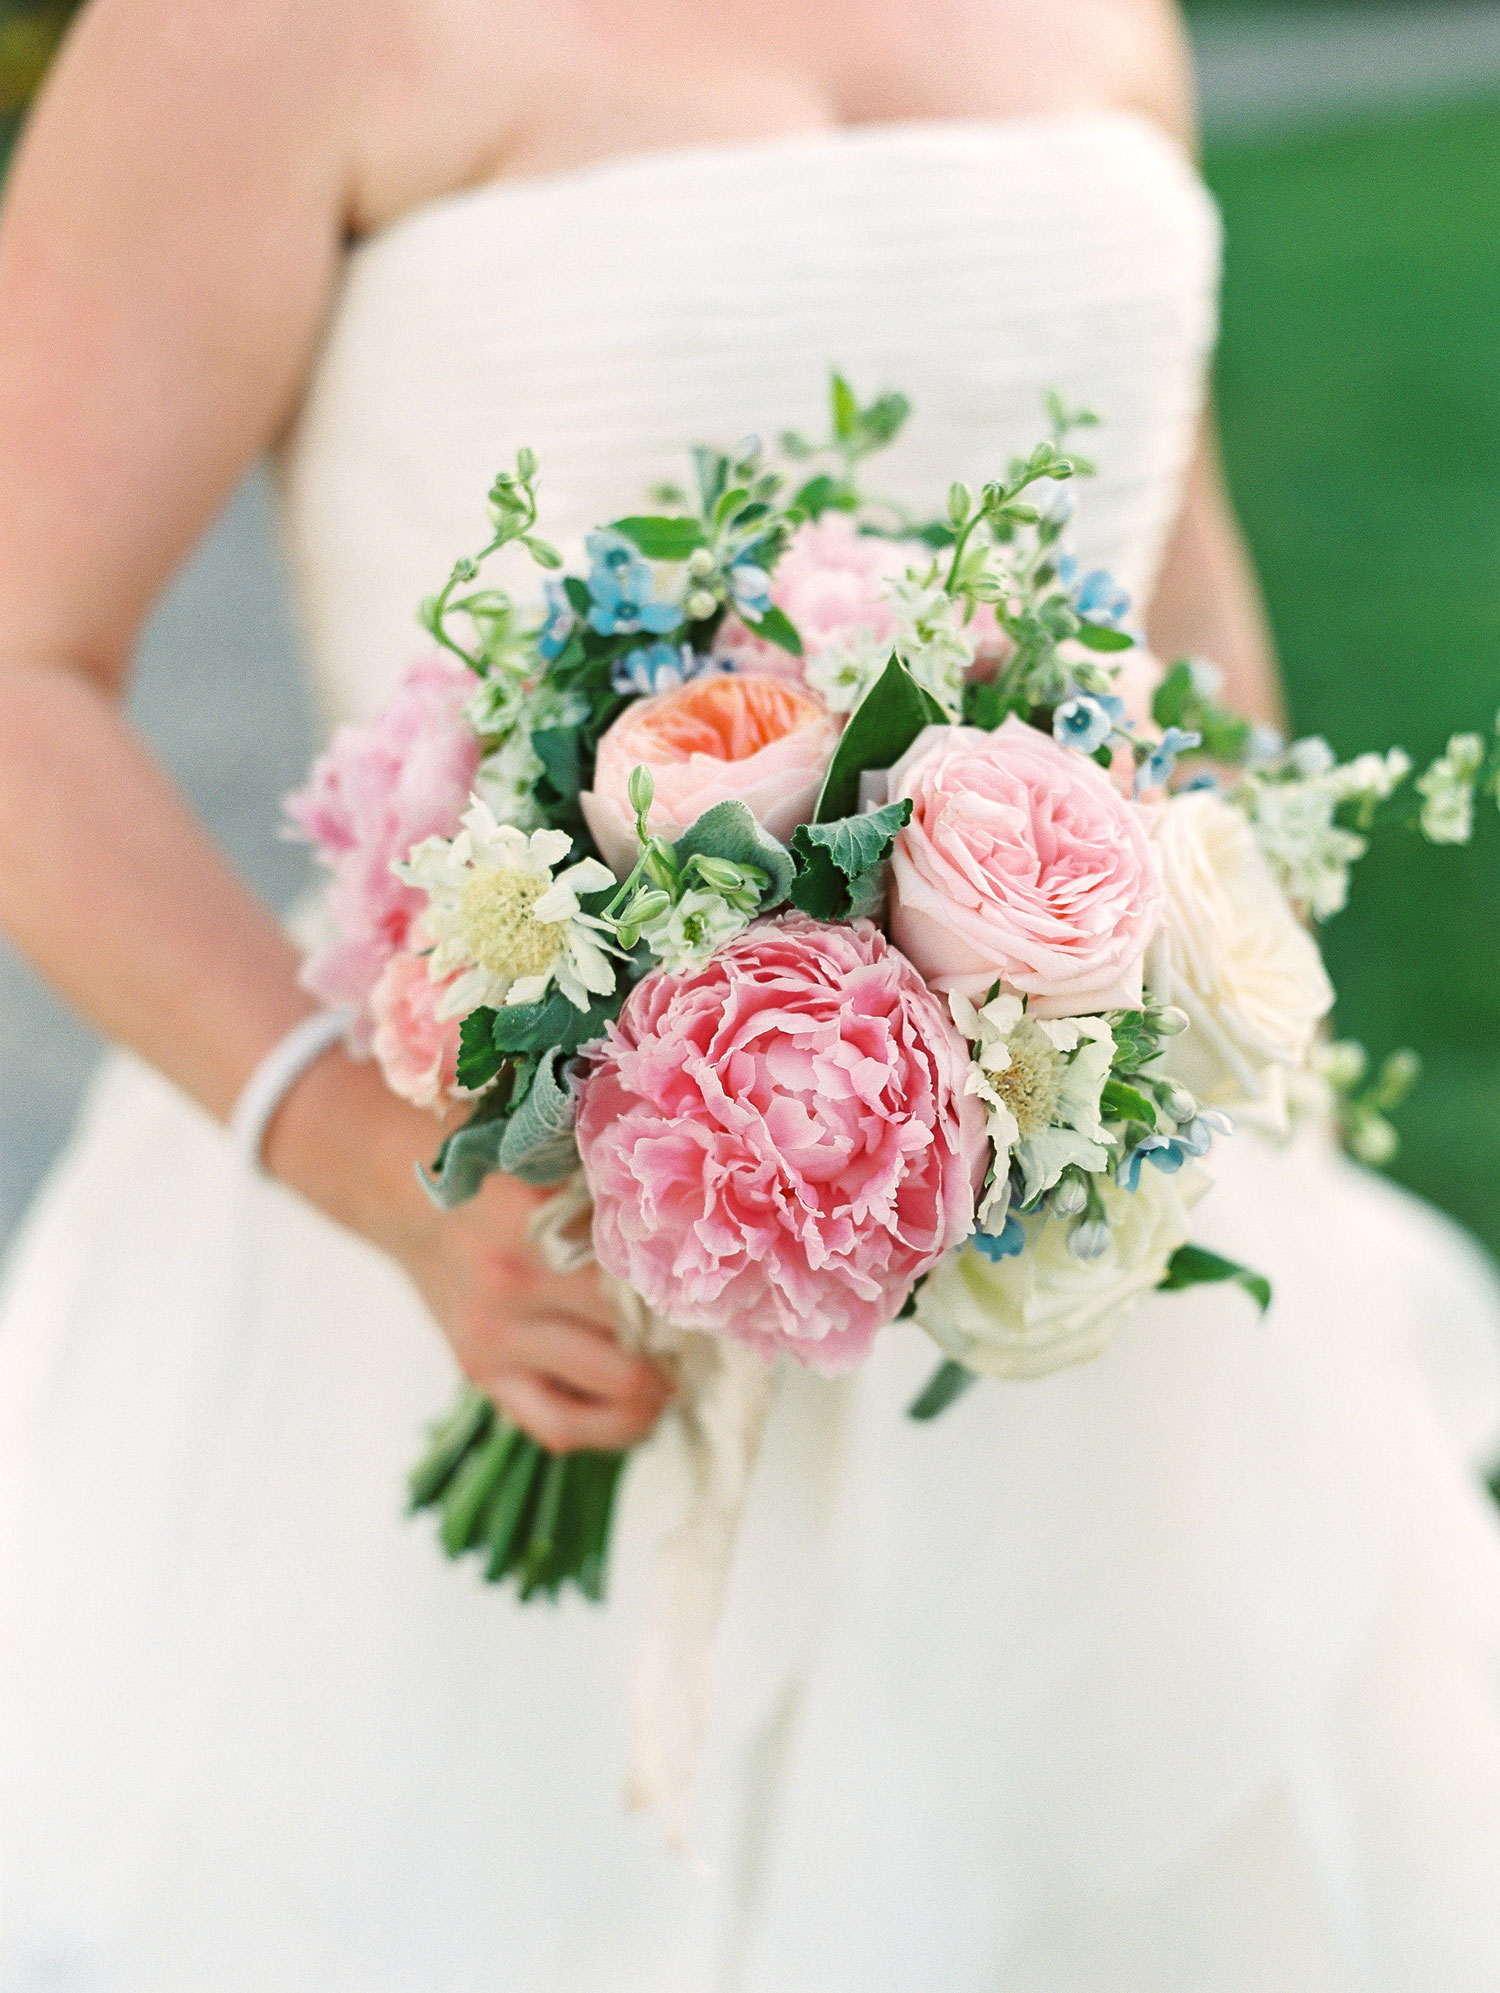 Bride holding bouquet with pink peony rose garden rose flowers